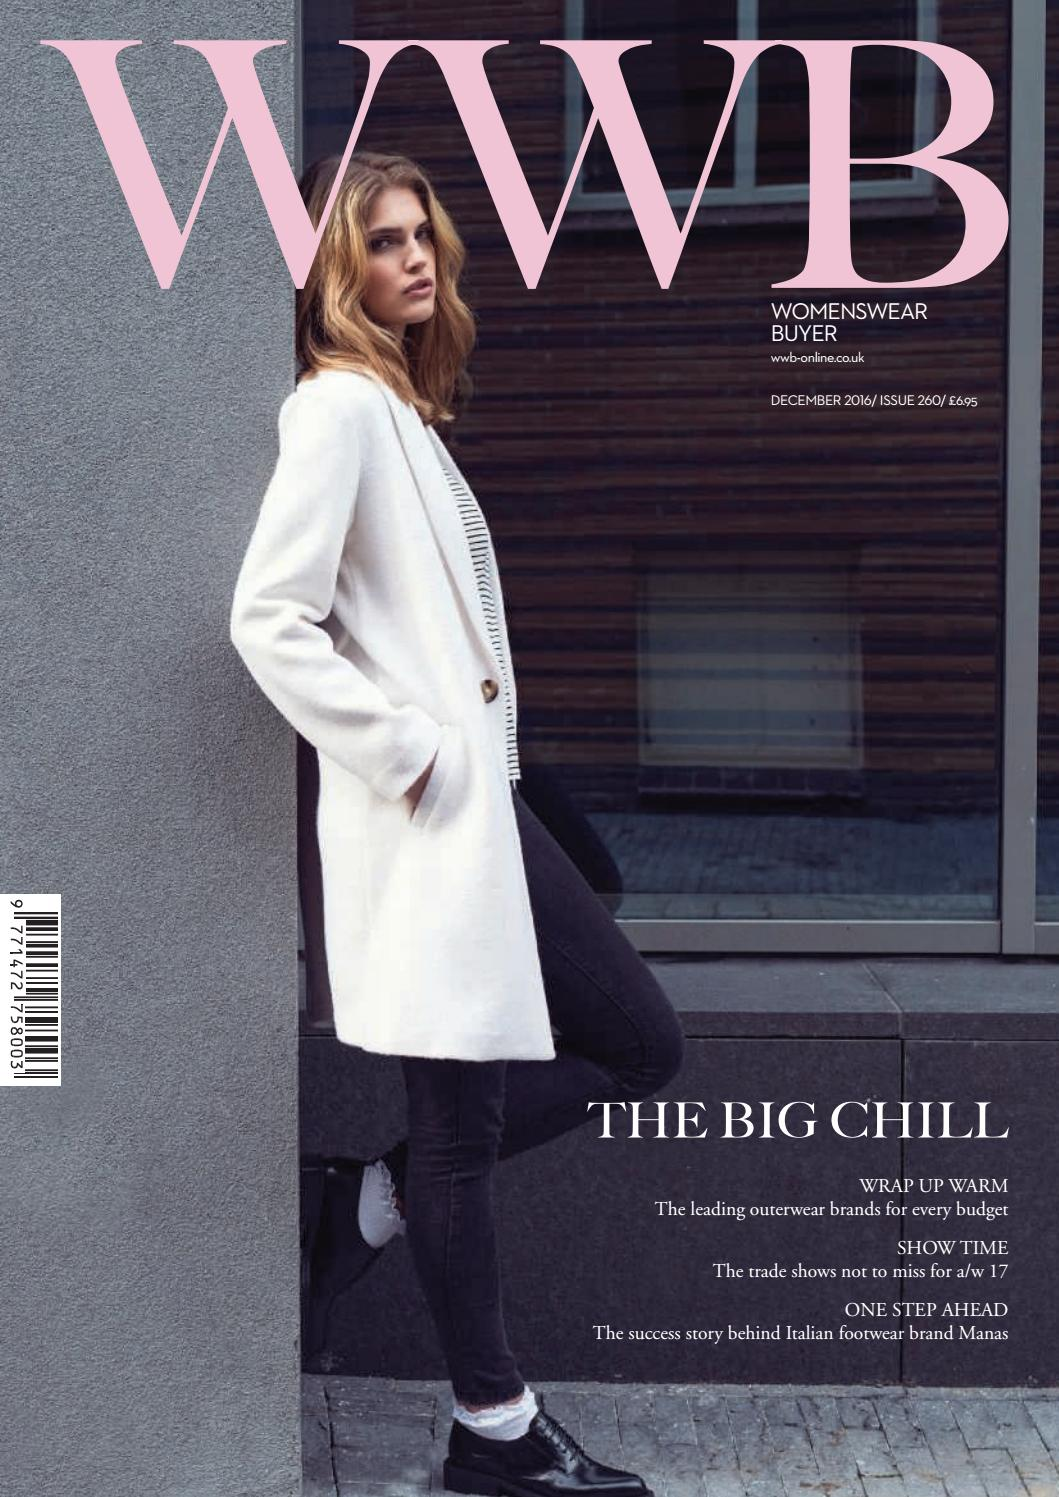 Wwb magazine june issue 256 by ite moda ltd   issuu